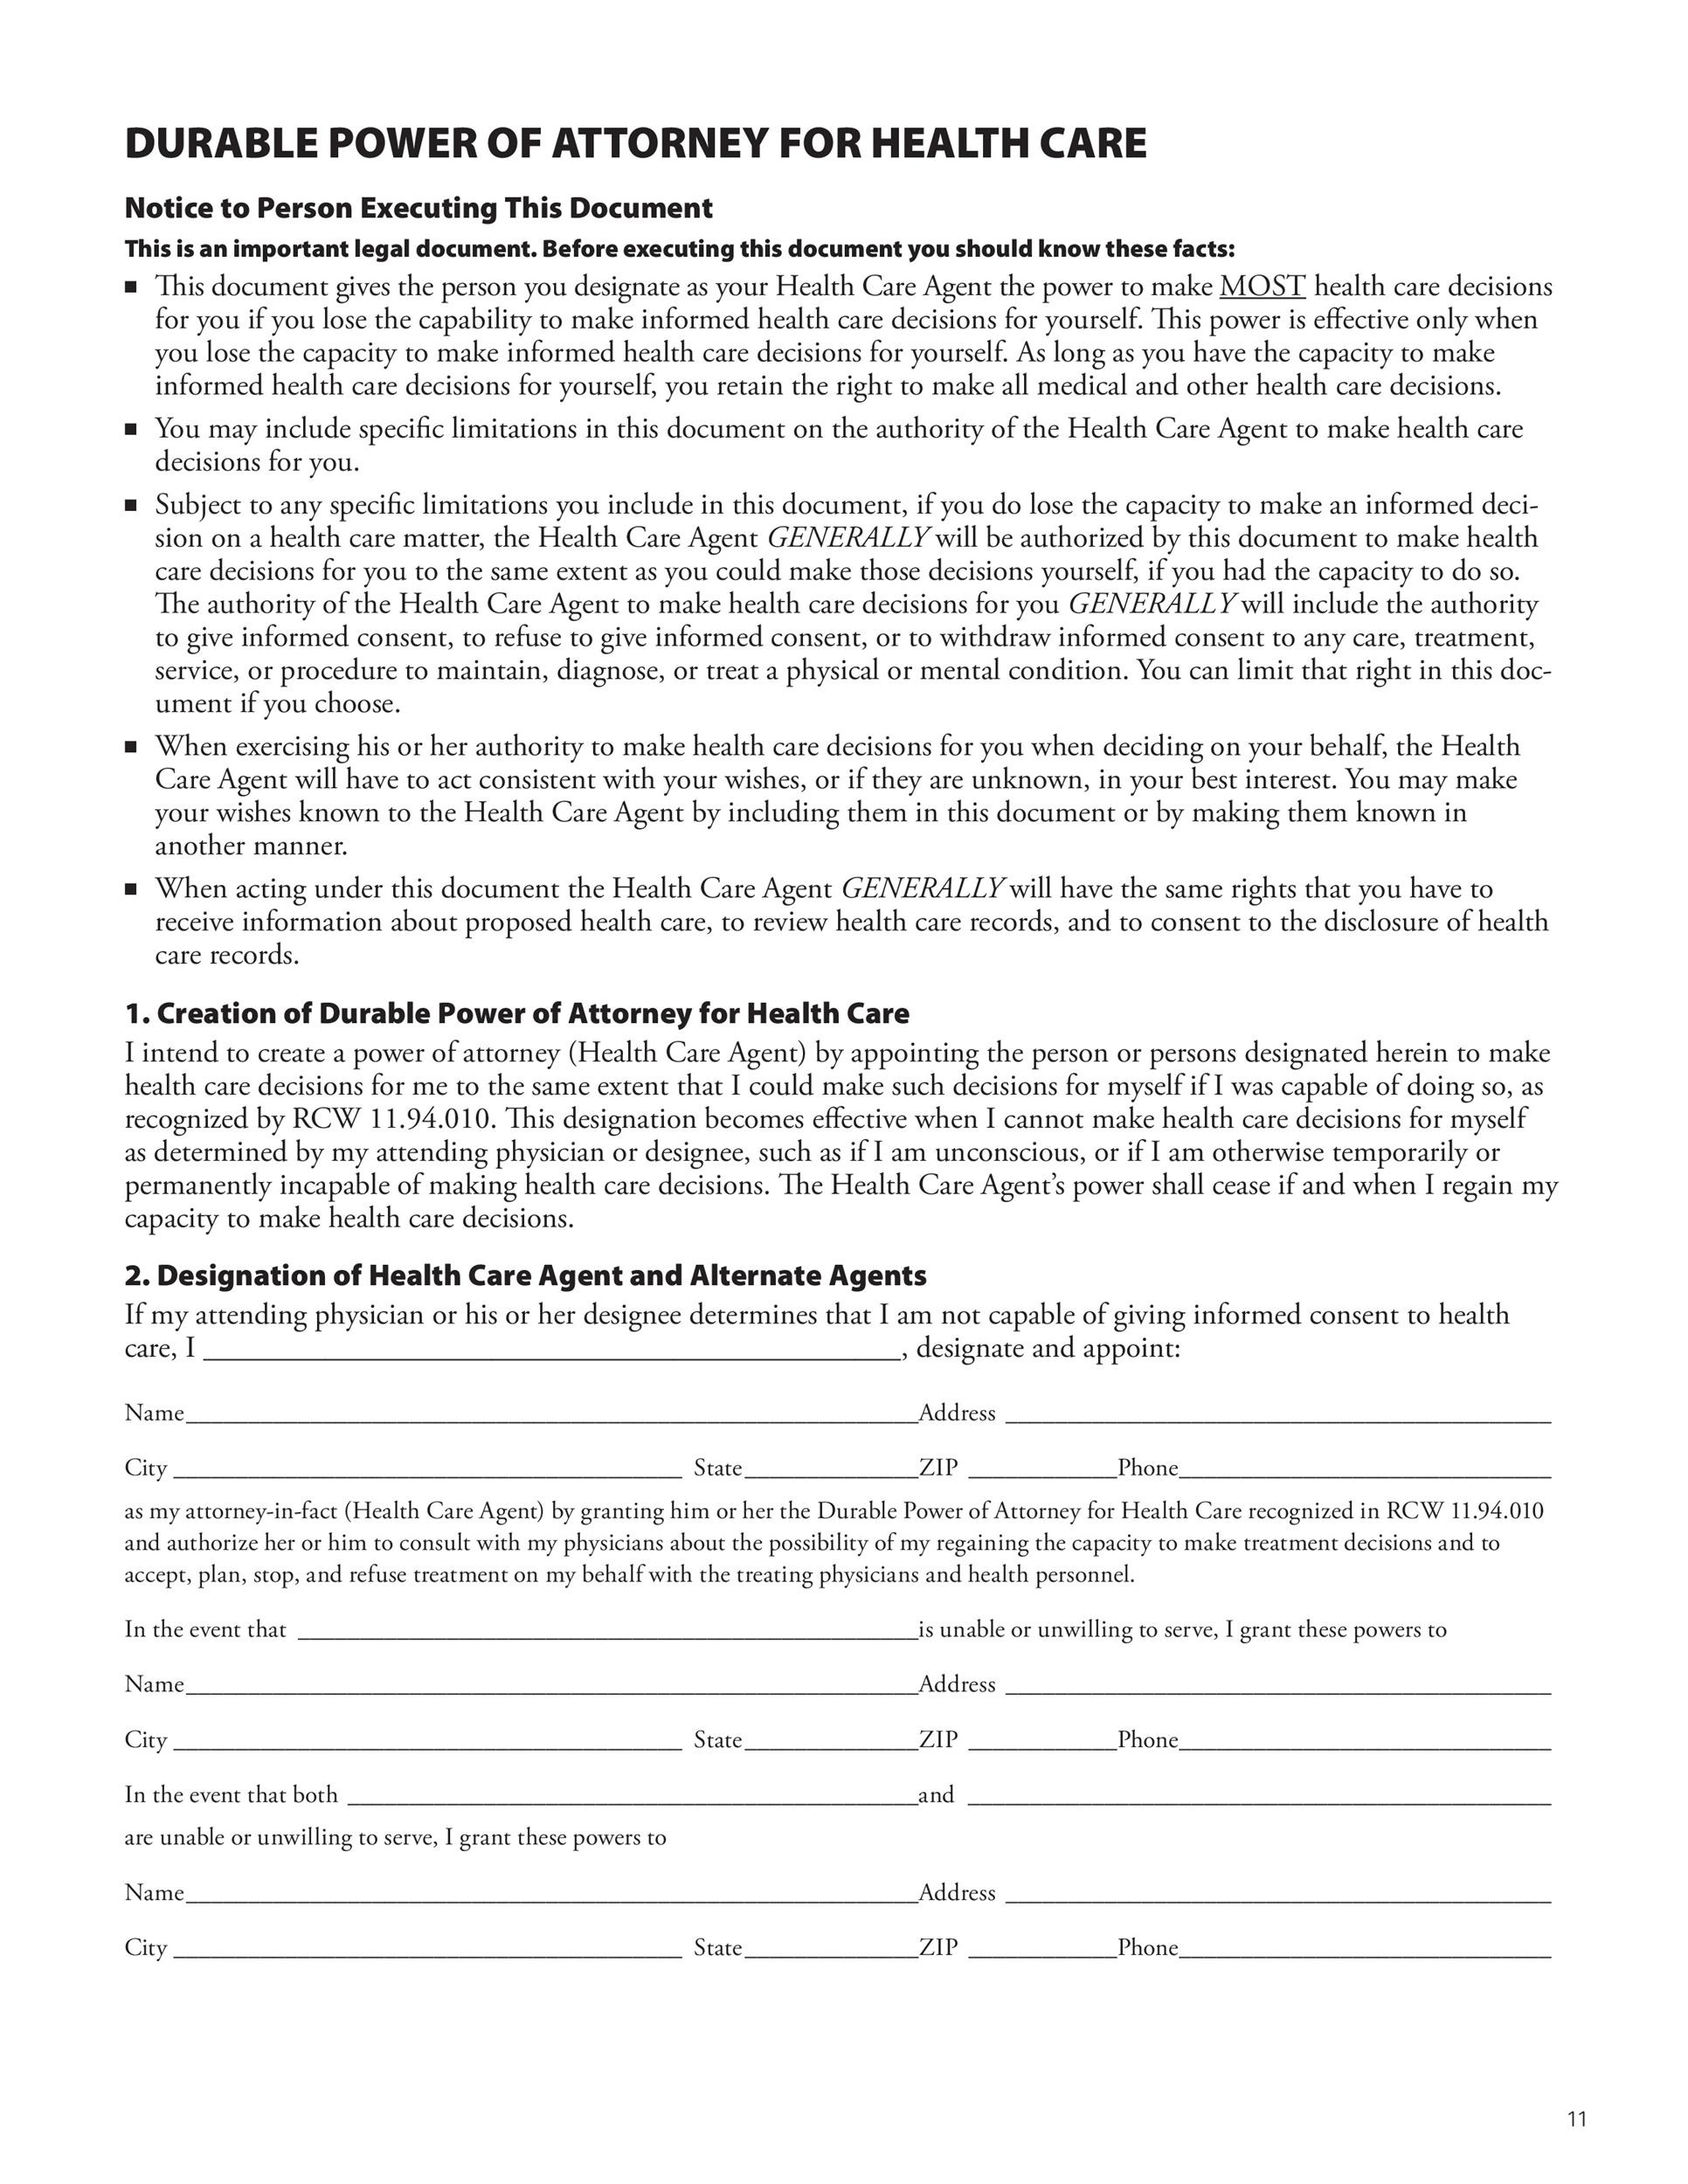 Free Power Of Attorney Forms Templates Durable MedicalGeneral - Durable power of attorney template